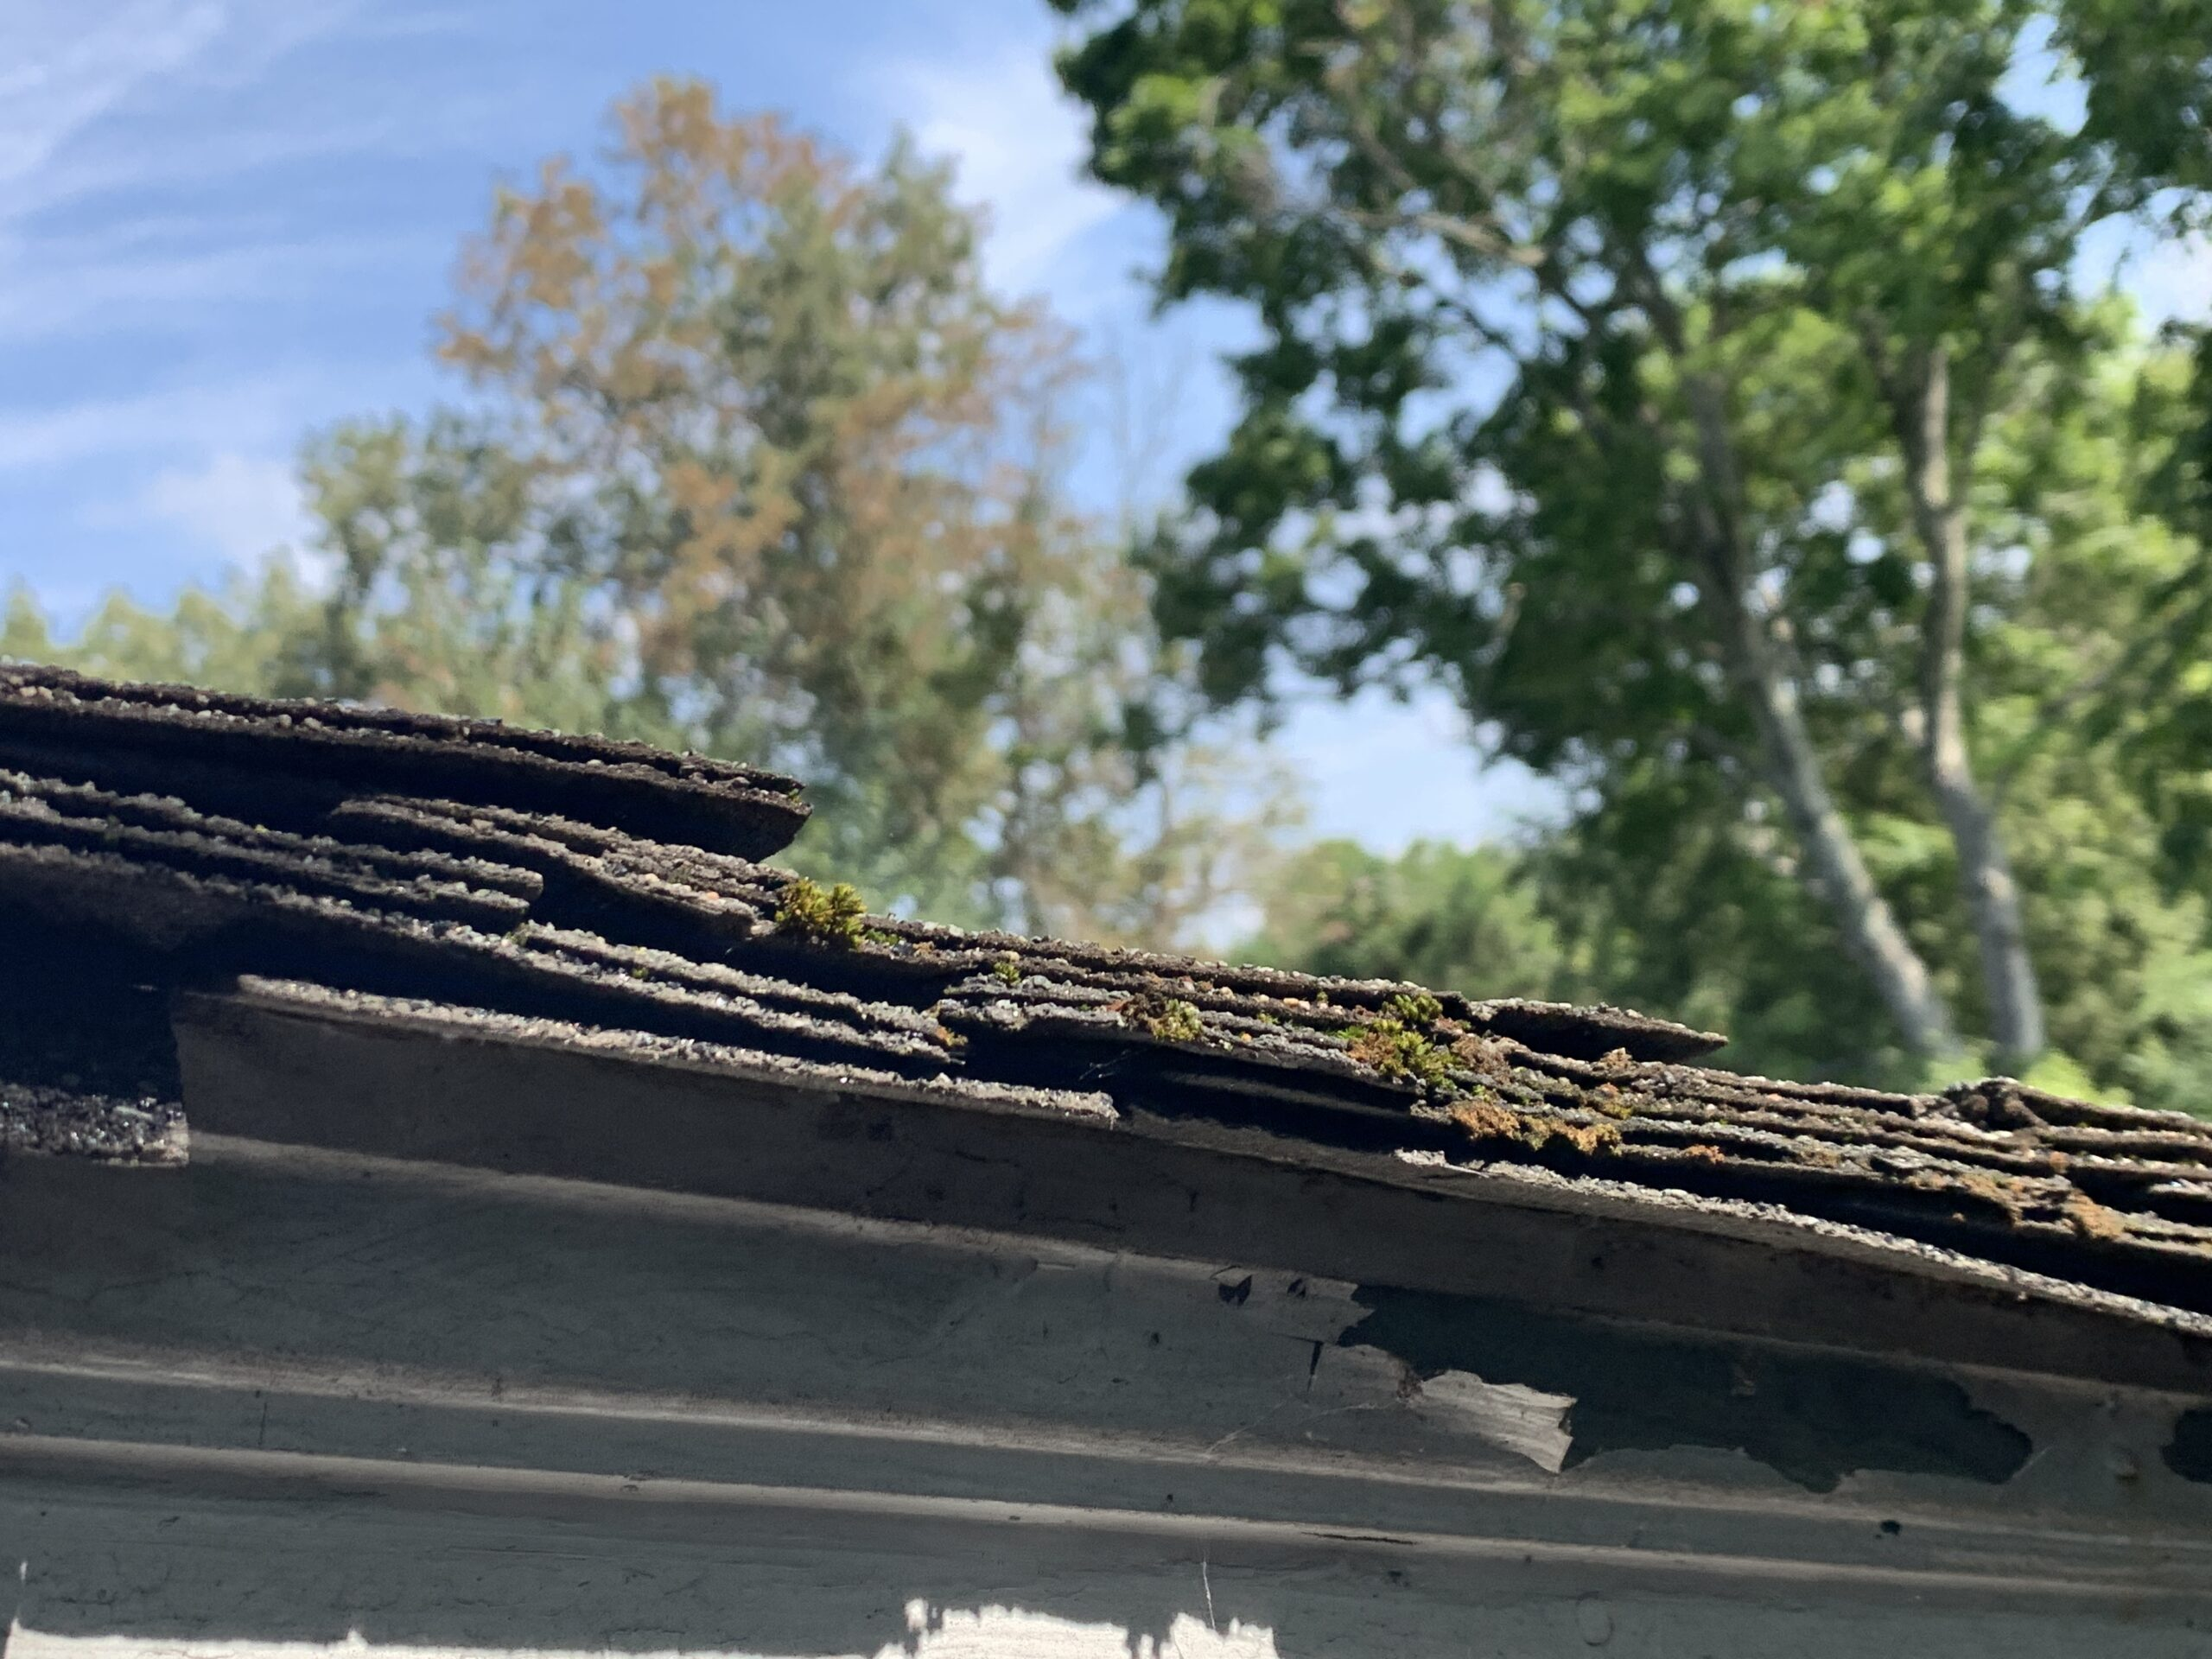 Multiple layers of shingles have been added to the roof deck not only causing potential roof leaks and roof issues, but also adding an enormous amount of weight to the roof structure